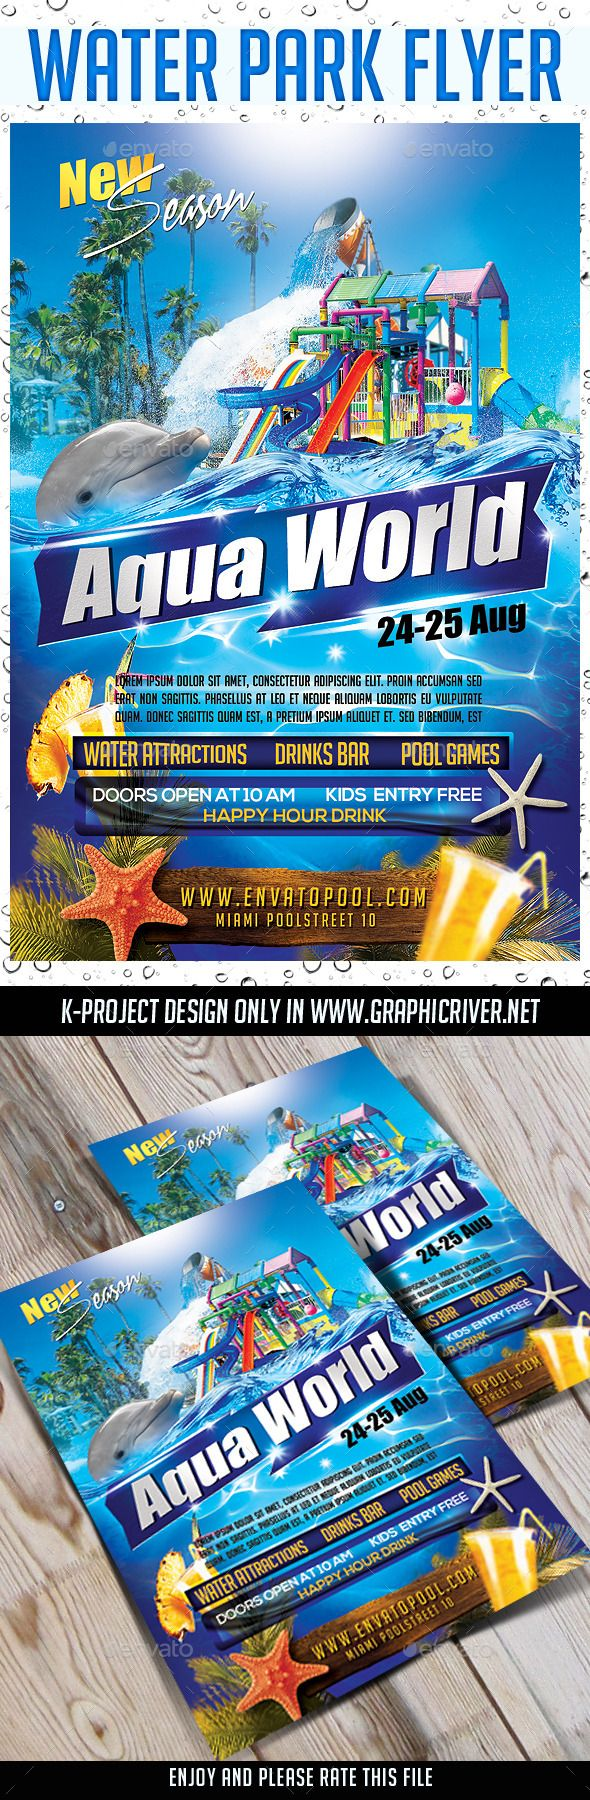 Pin by SirleK on summer flyer templates   Flyer design